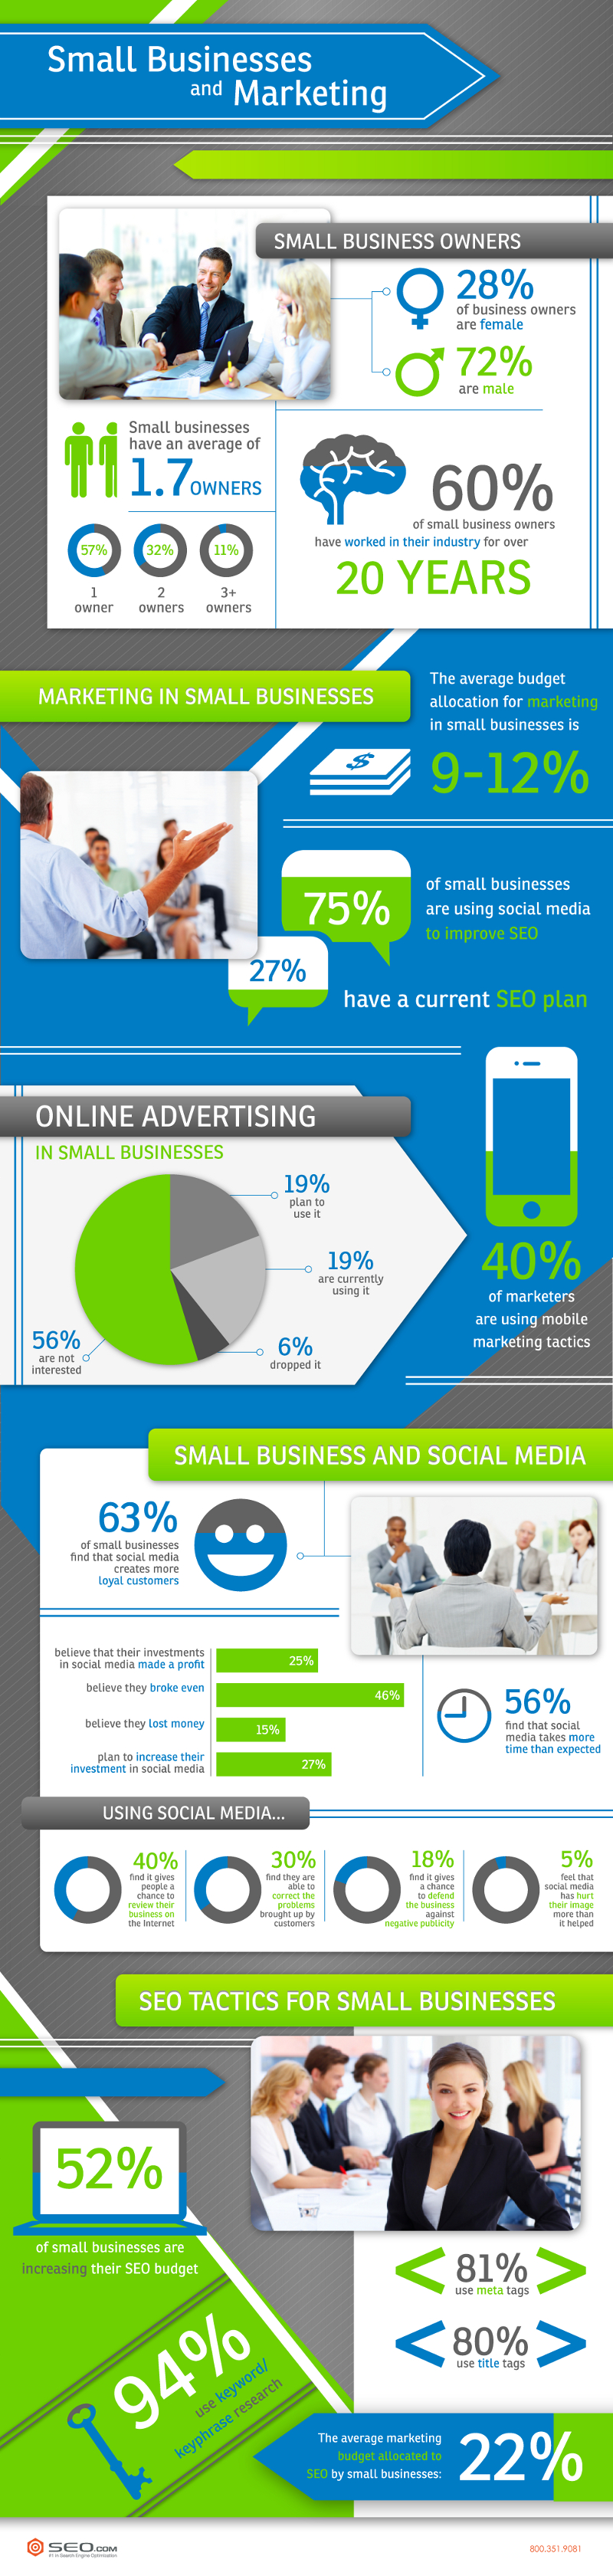 Small Business Statistics and Marketing